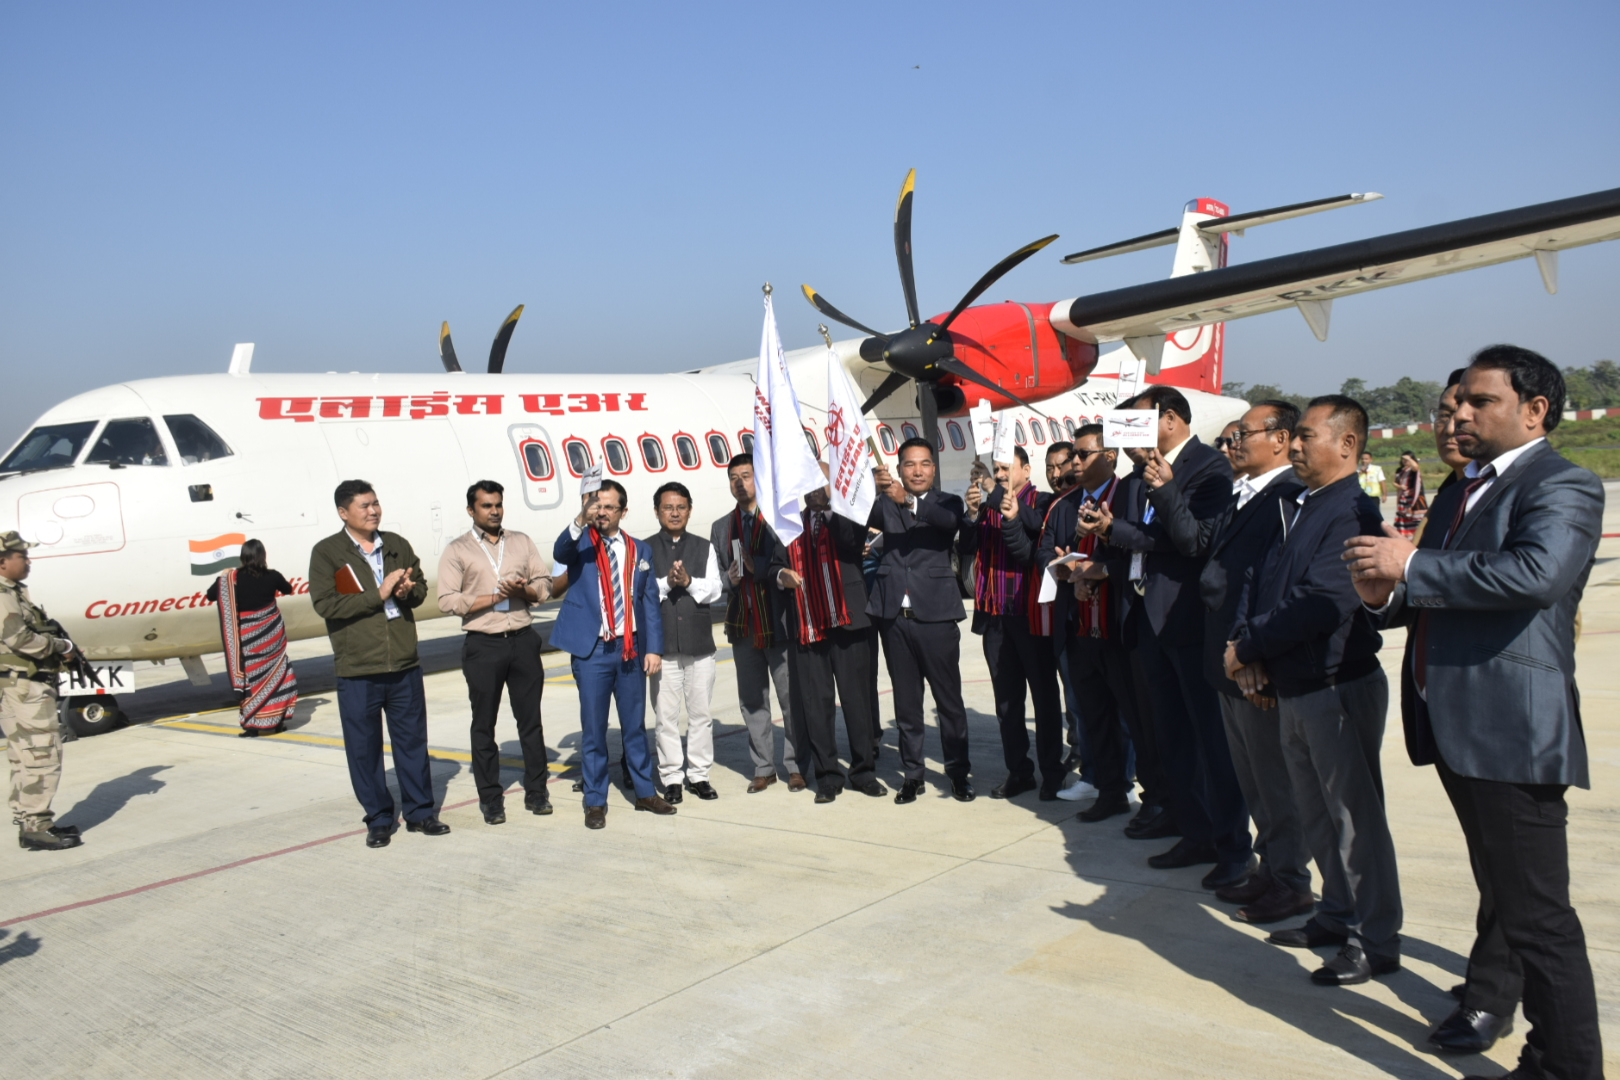 Alliance Air first flight takes off from Dimapur; direct connectivity to Imphal, Guwahati